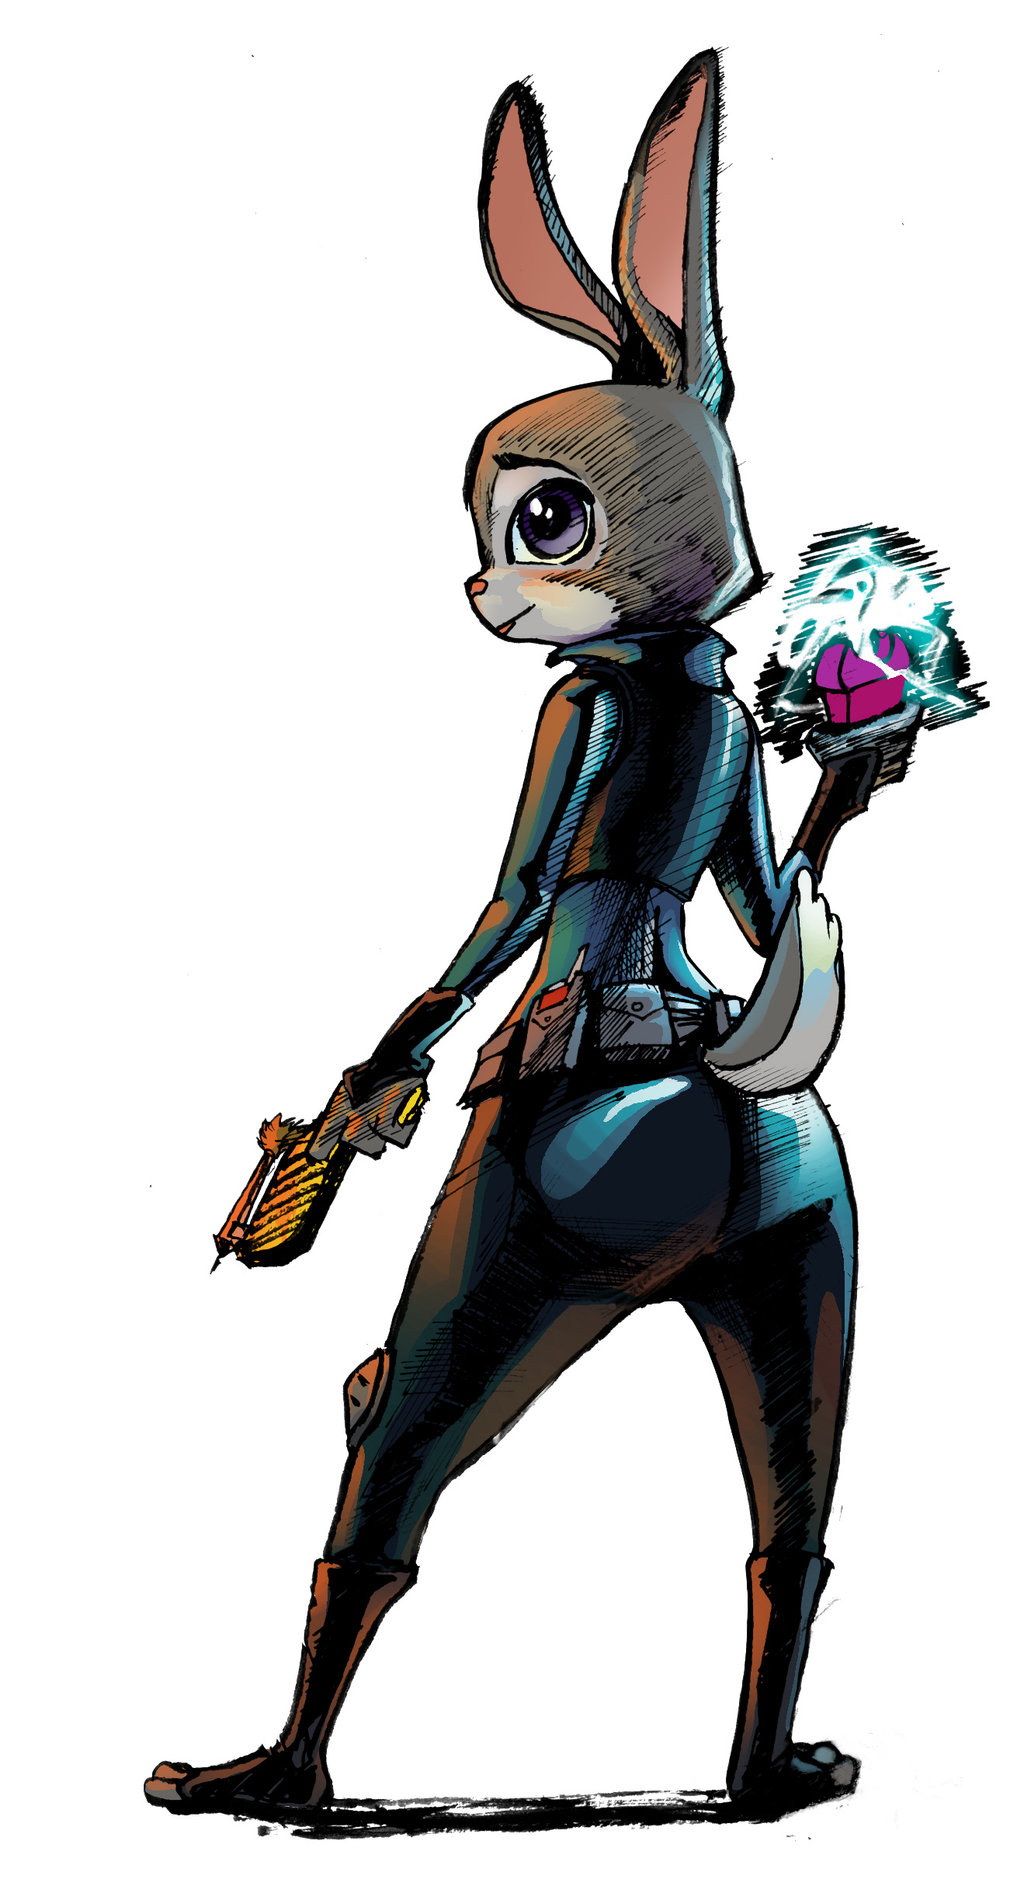 judy hopps: too sexy | zootopia | know your meme